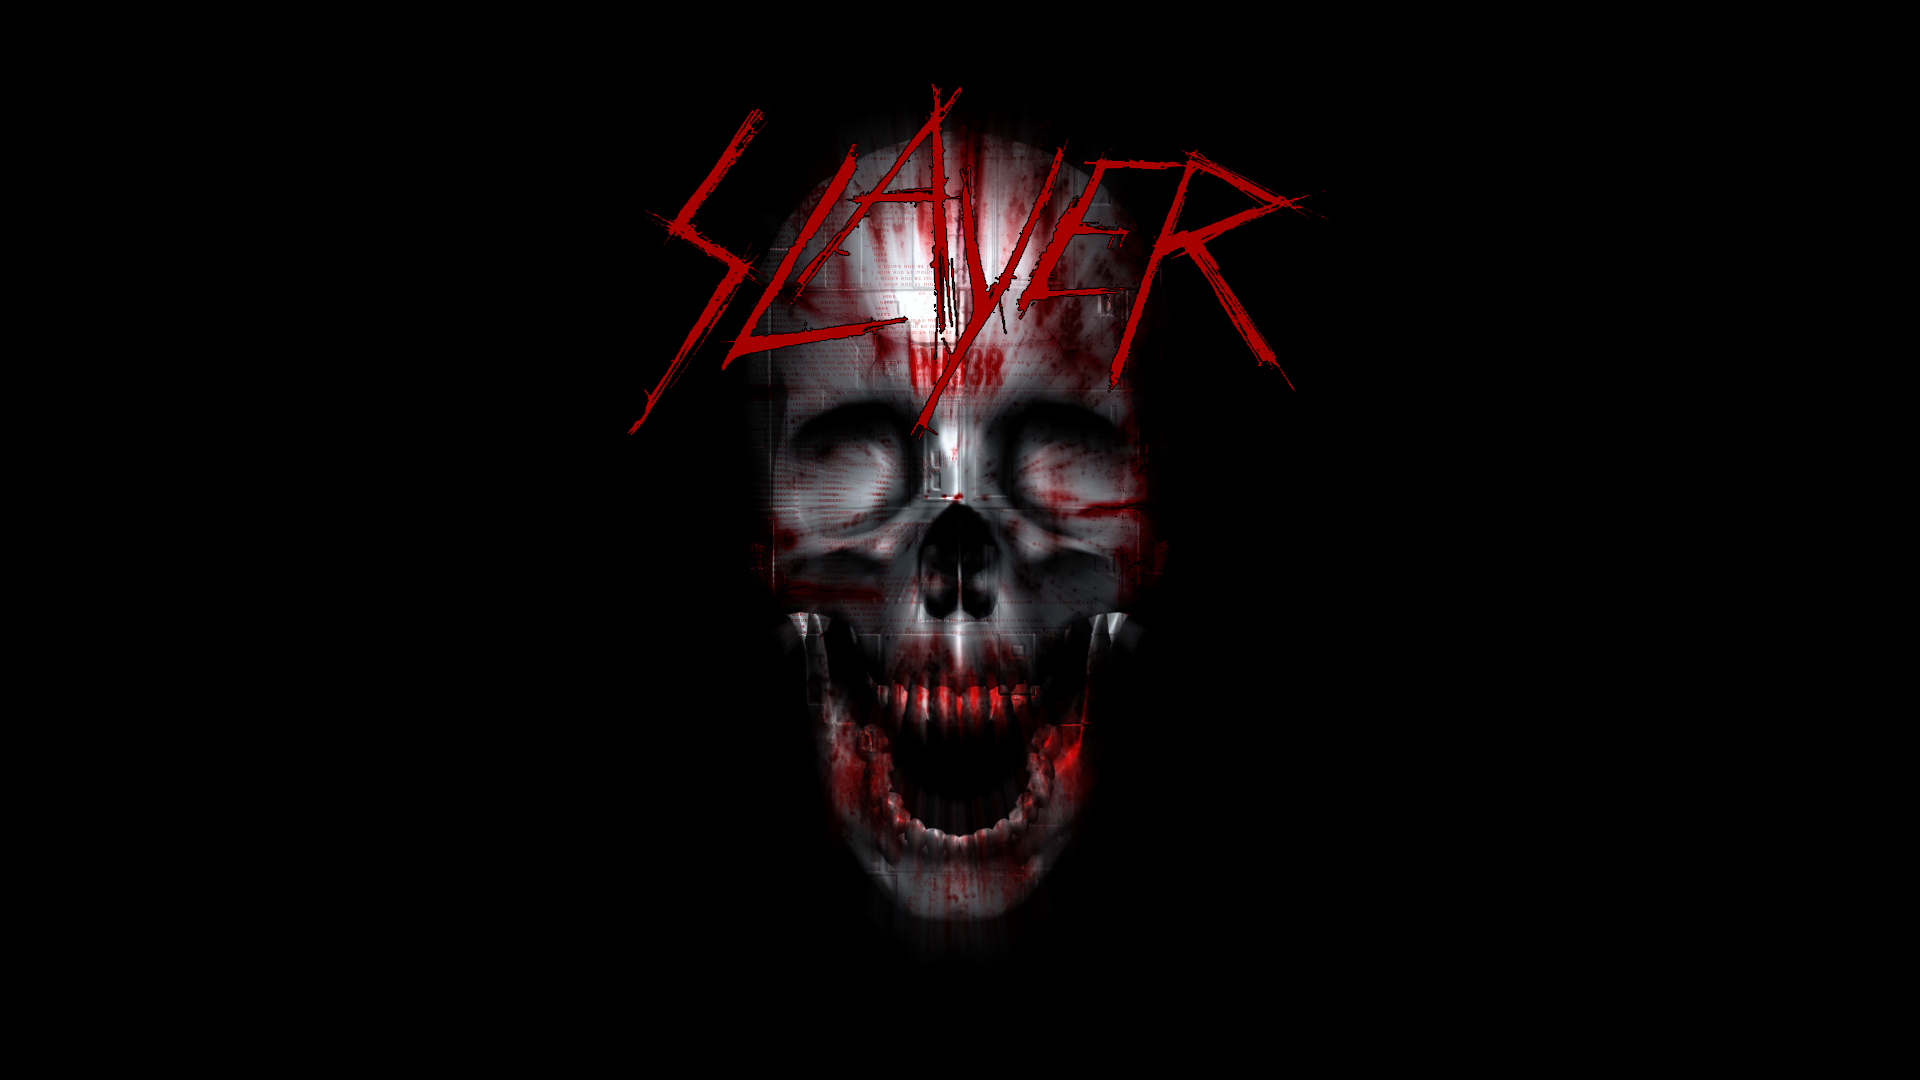 Slayer Full HD Wallpaper and Background Image | 1920x1080 ...